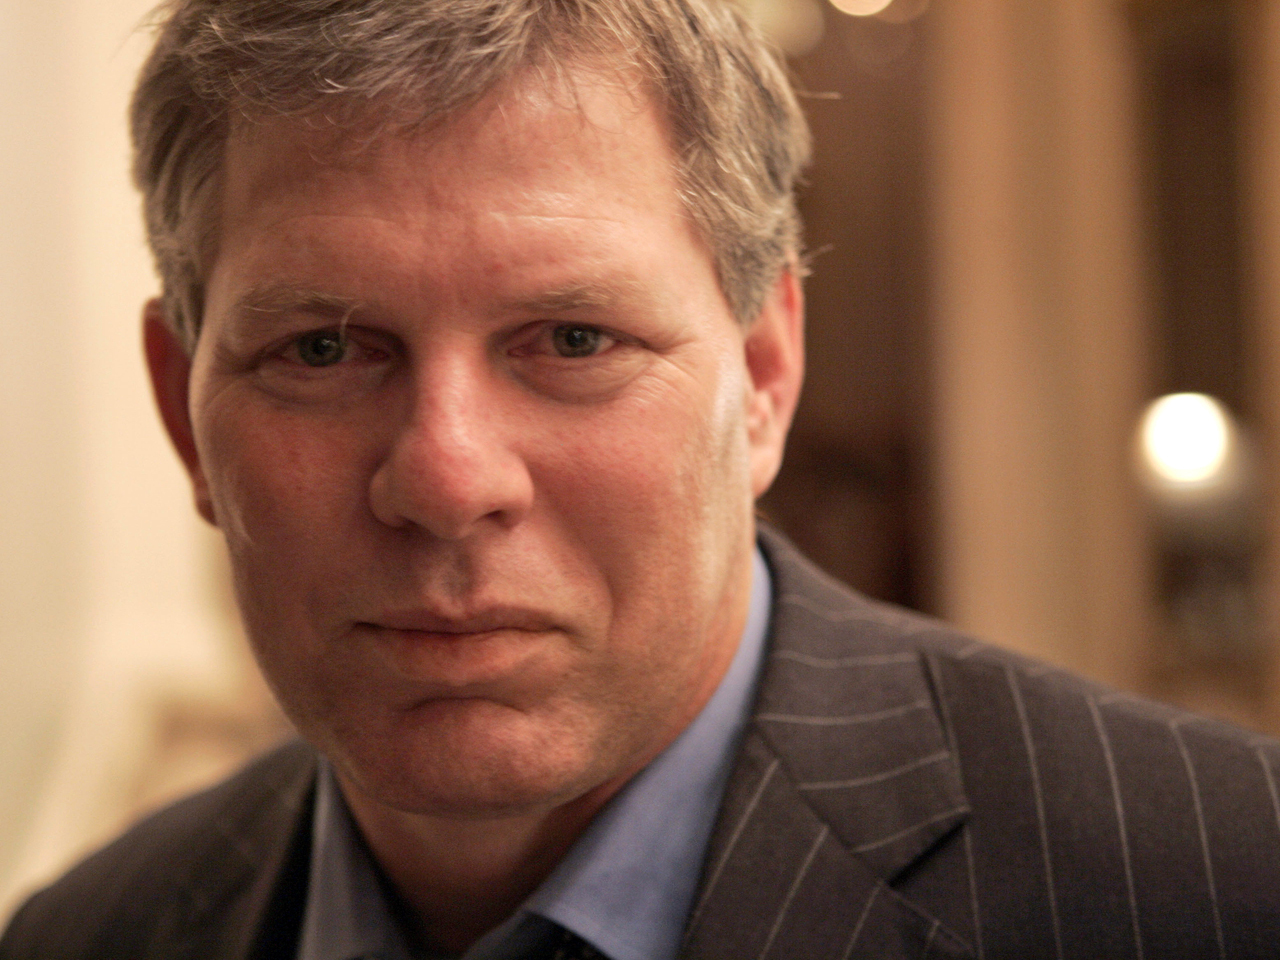 Lenny Dykstra charged with embezzling - CBS News